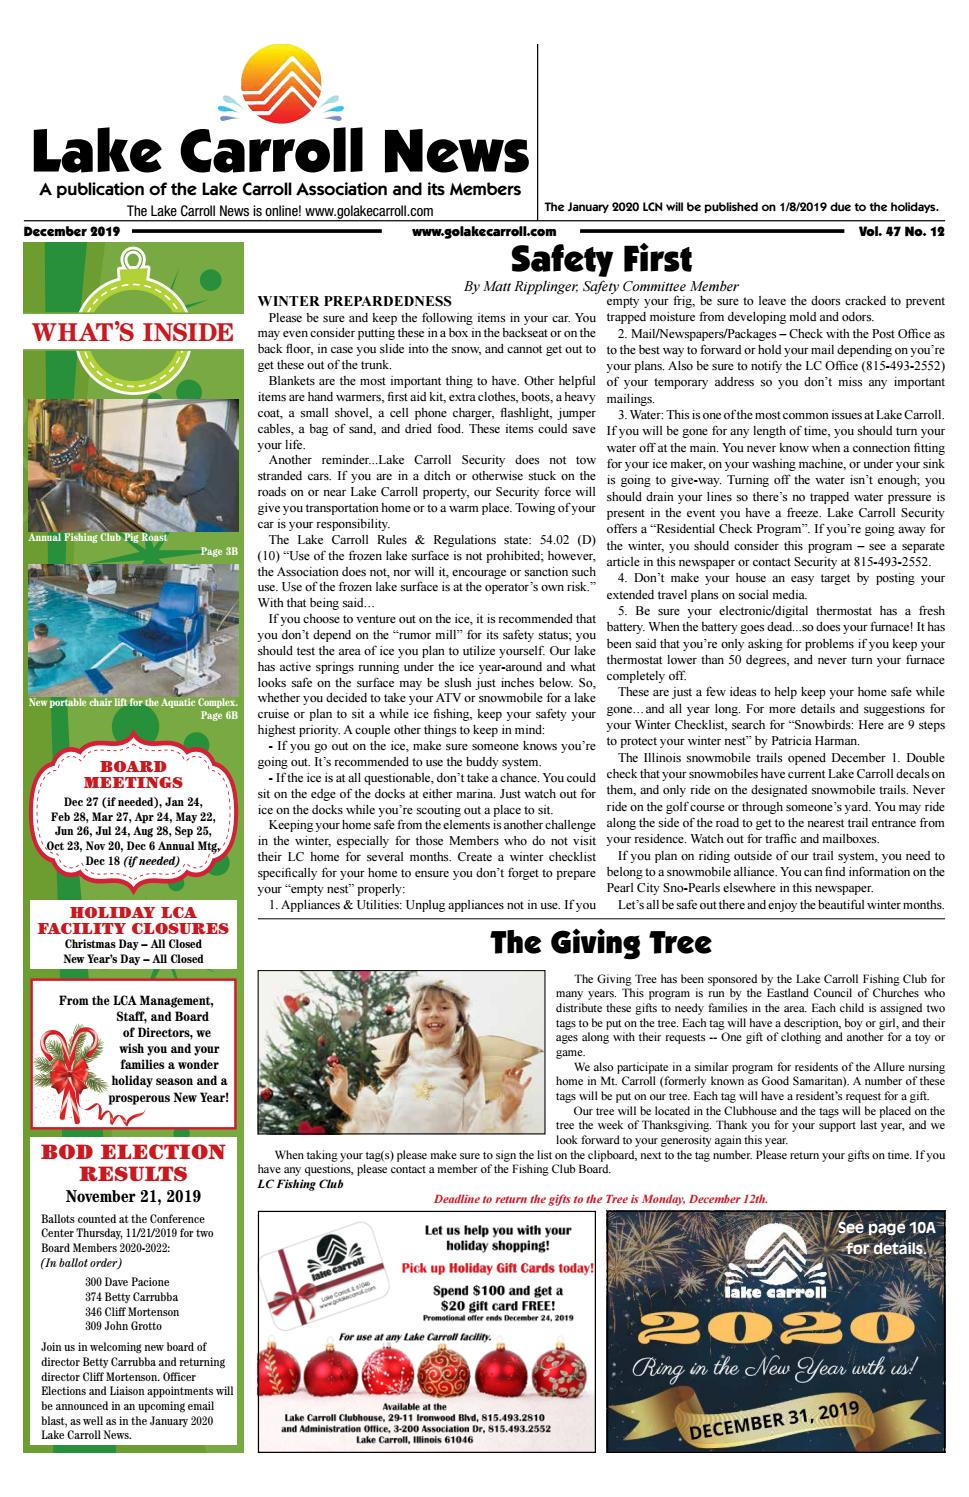 Temple Square Christmas Lights 2020-2022 Lake Carroll News December 2019 by Lake Carrol News   issuu